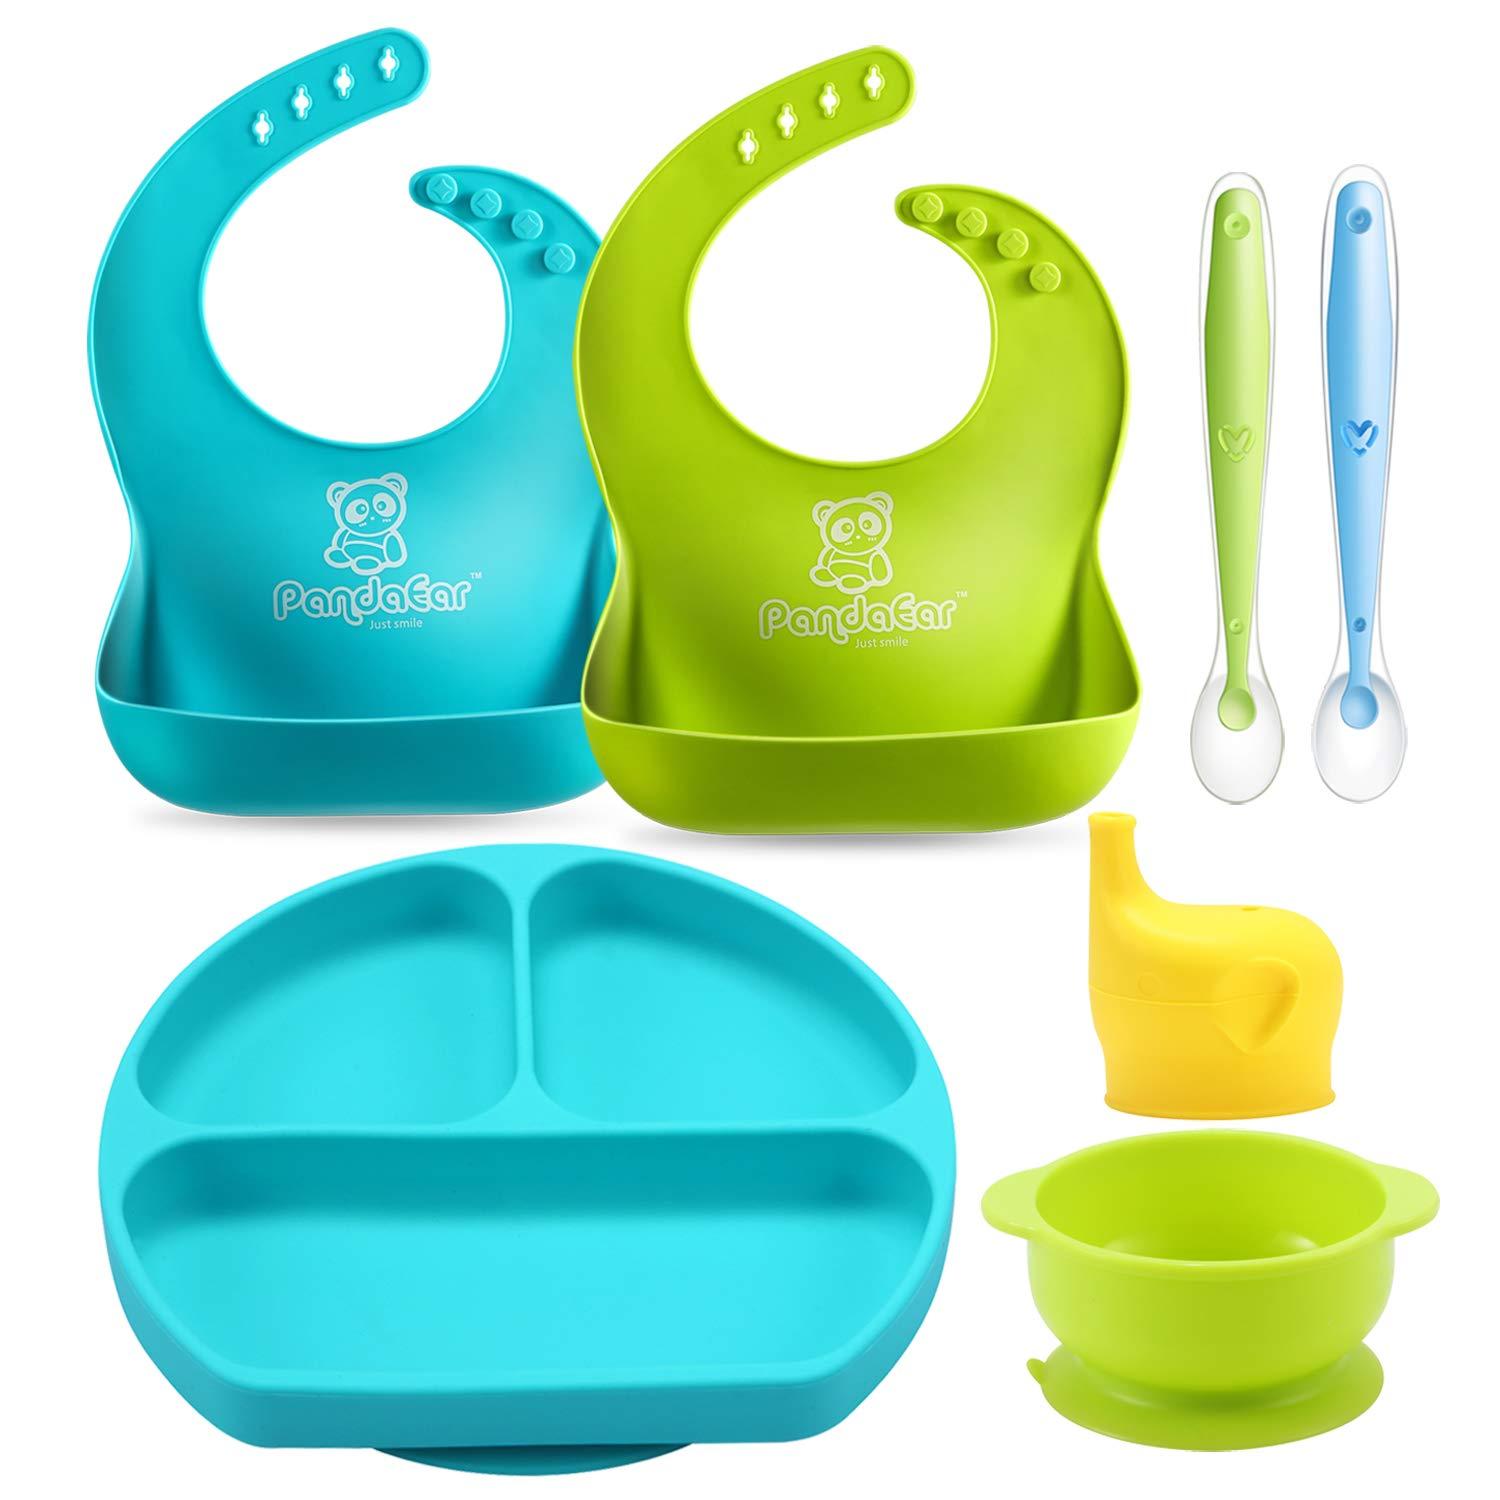 PandaEar Baby Toddlers Infants Feeding Set |Adjustable Silicone Bibs | Suction Bowls |Divided Plates Soft Spoon |Cup Holder & Self Feeding Aids by PandaEar